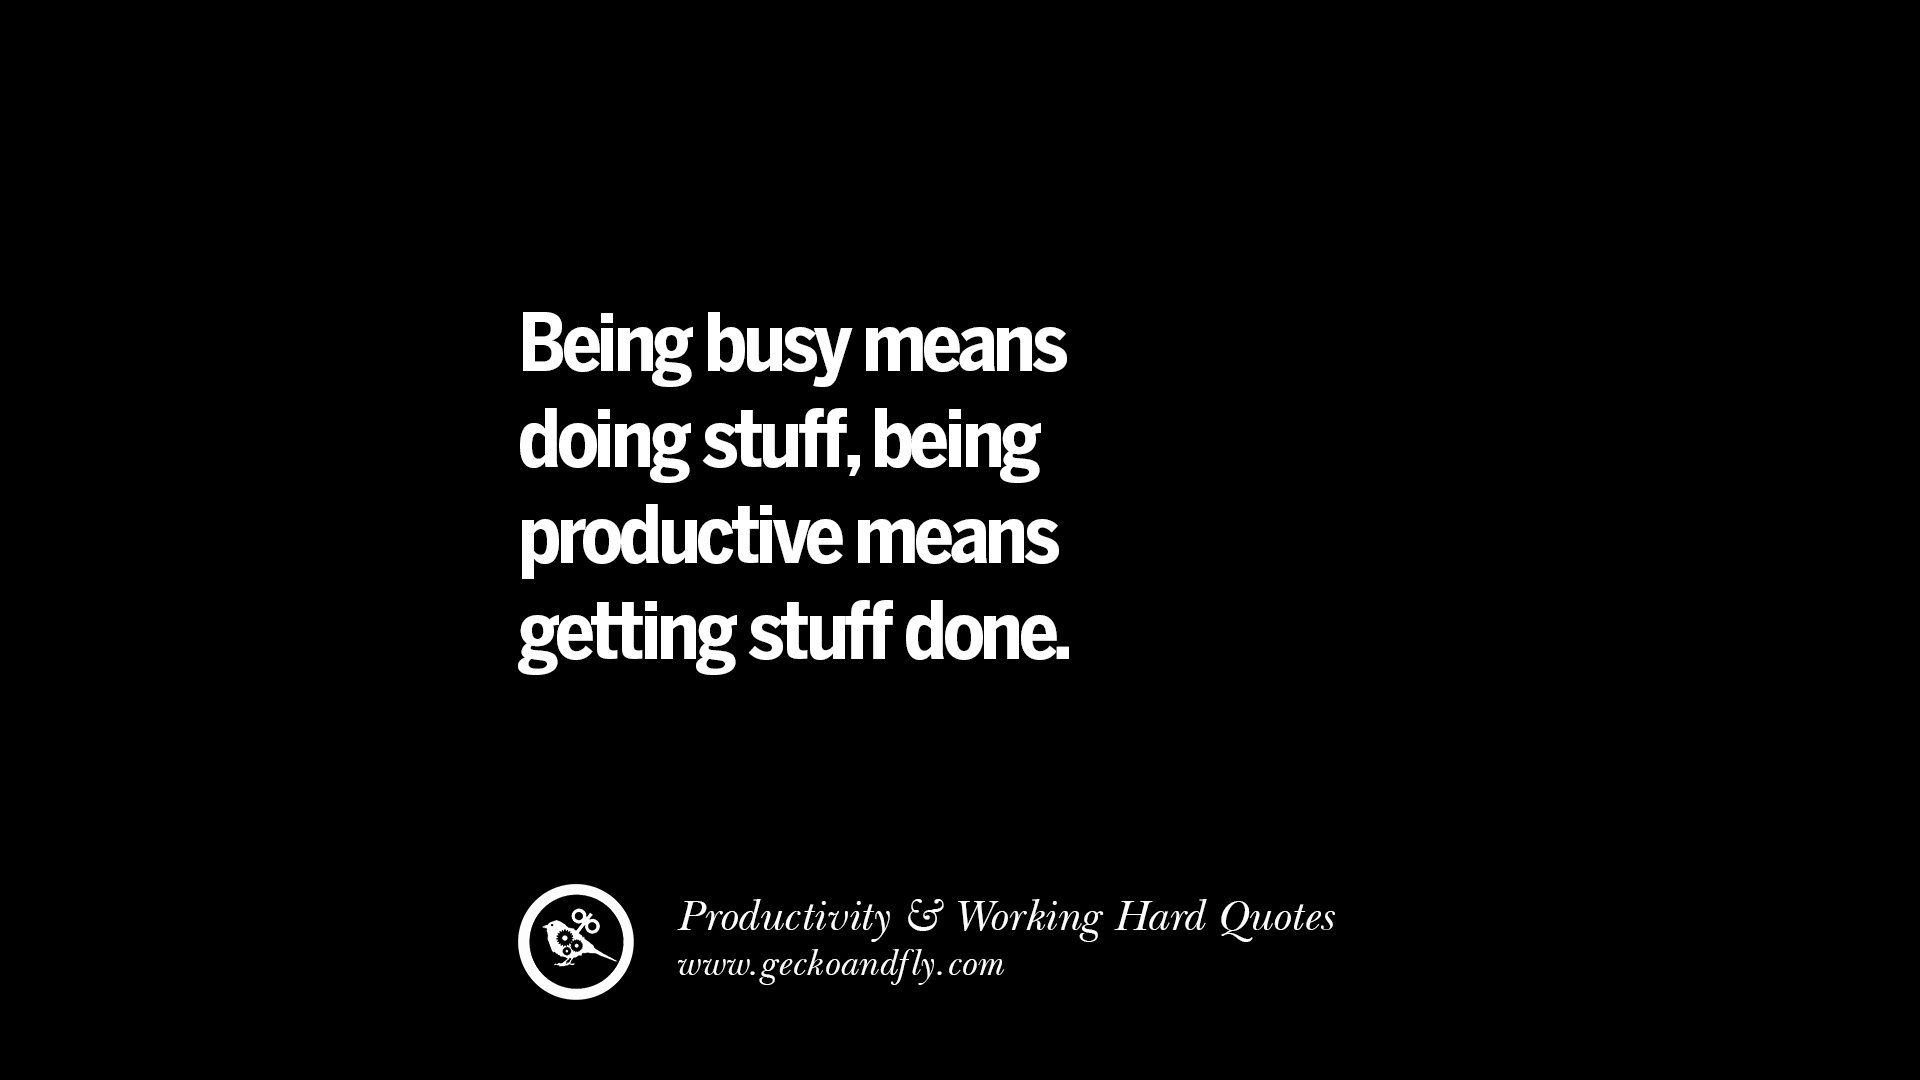 Work Inspirational Quotes 30 Uplifting Quotes On Increasing Productivity And Working Hard